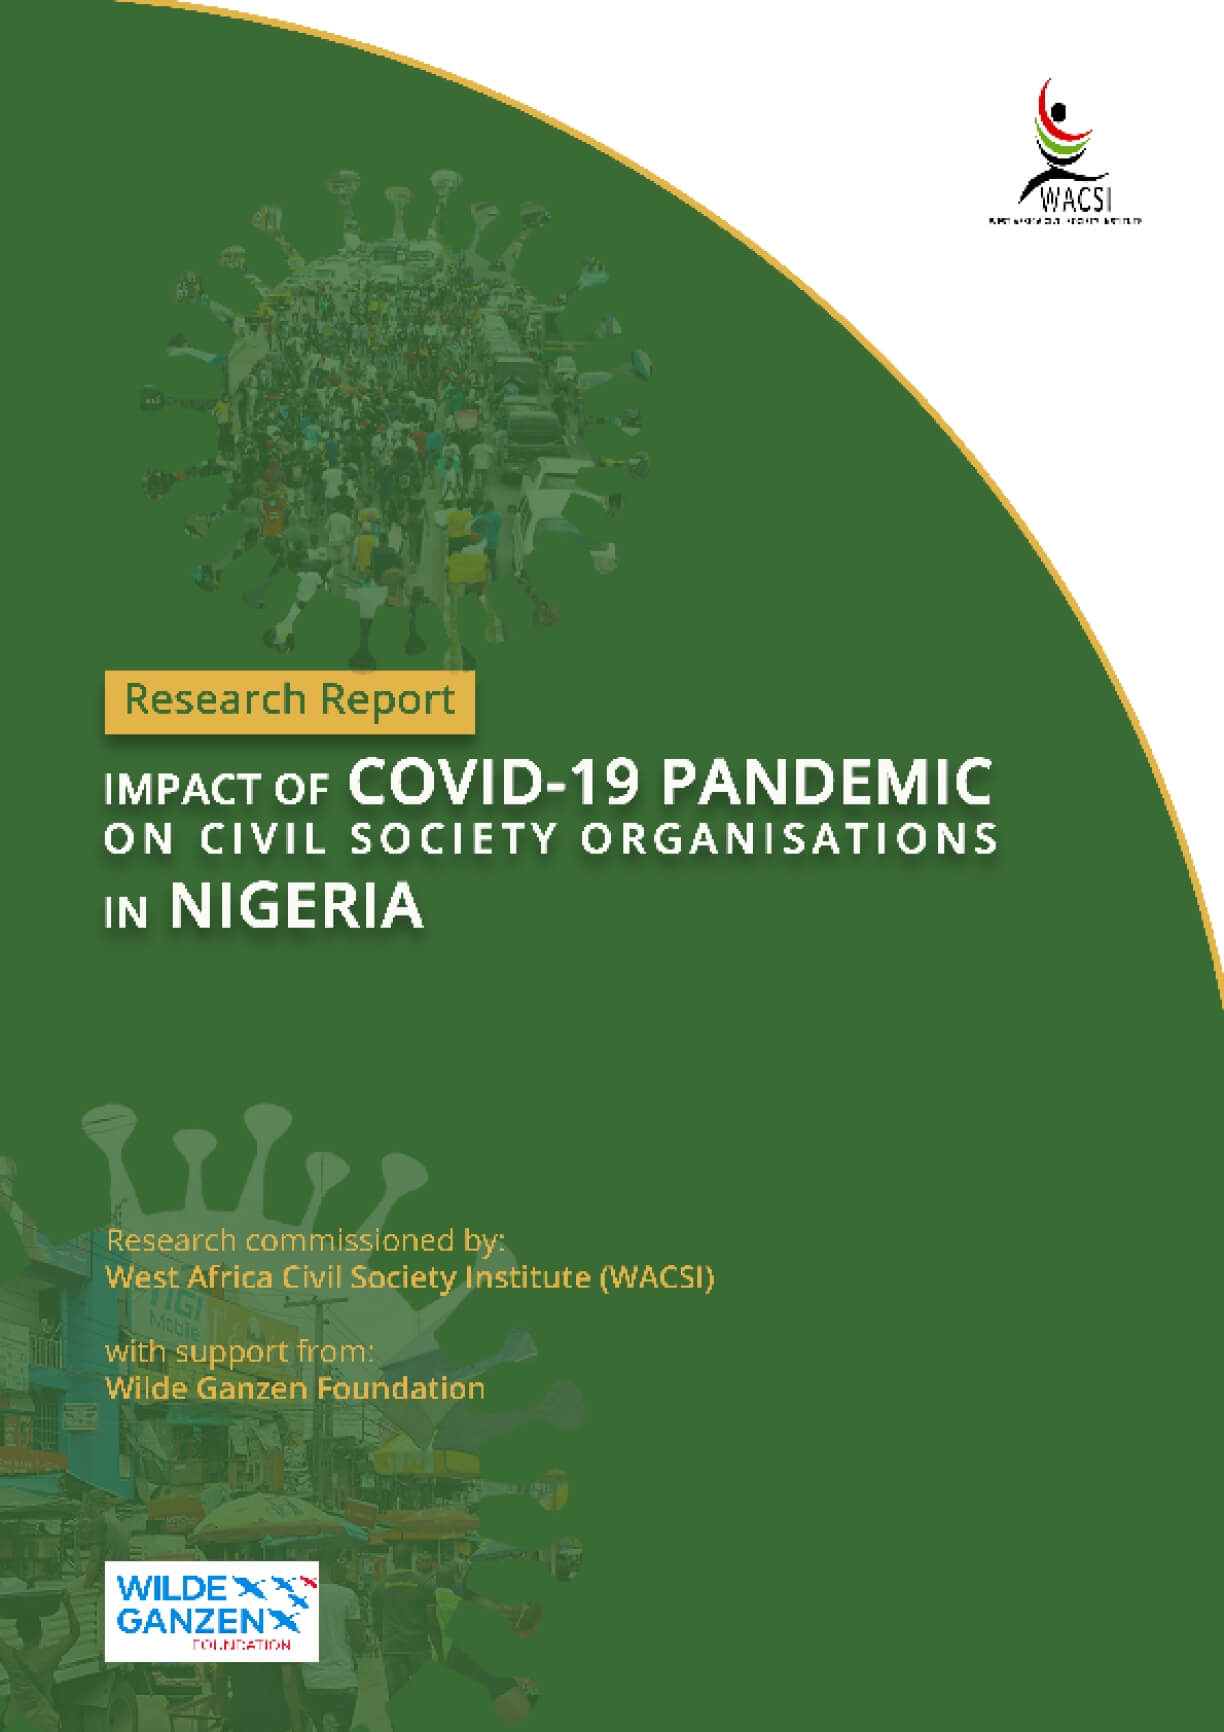 Impact of COVID-19 Pandemic on Civil Society Organisations in Nigeria